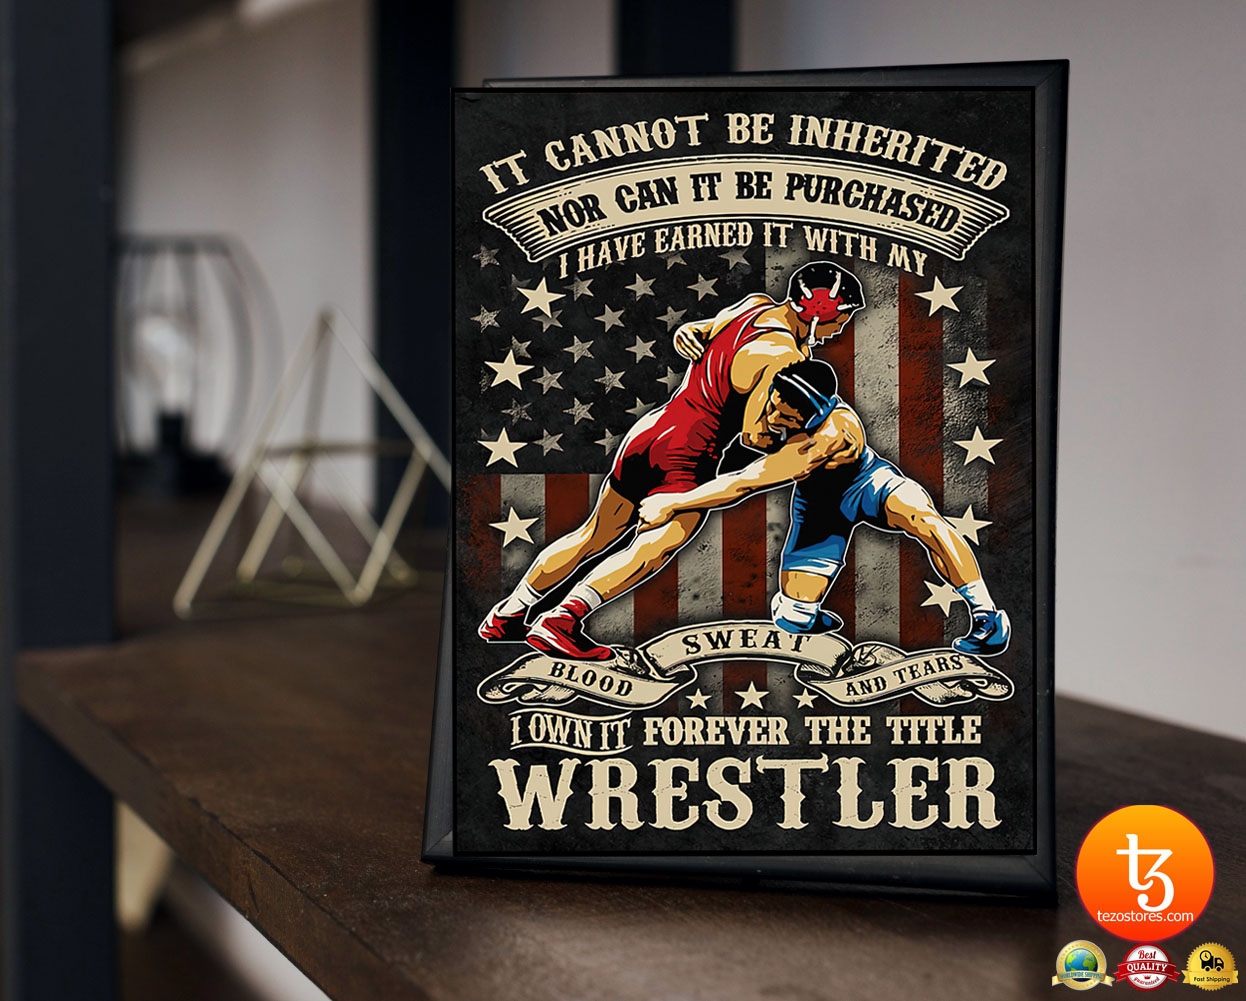 Wrestling it cannot be inherited nor can it be purchased poster 19